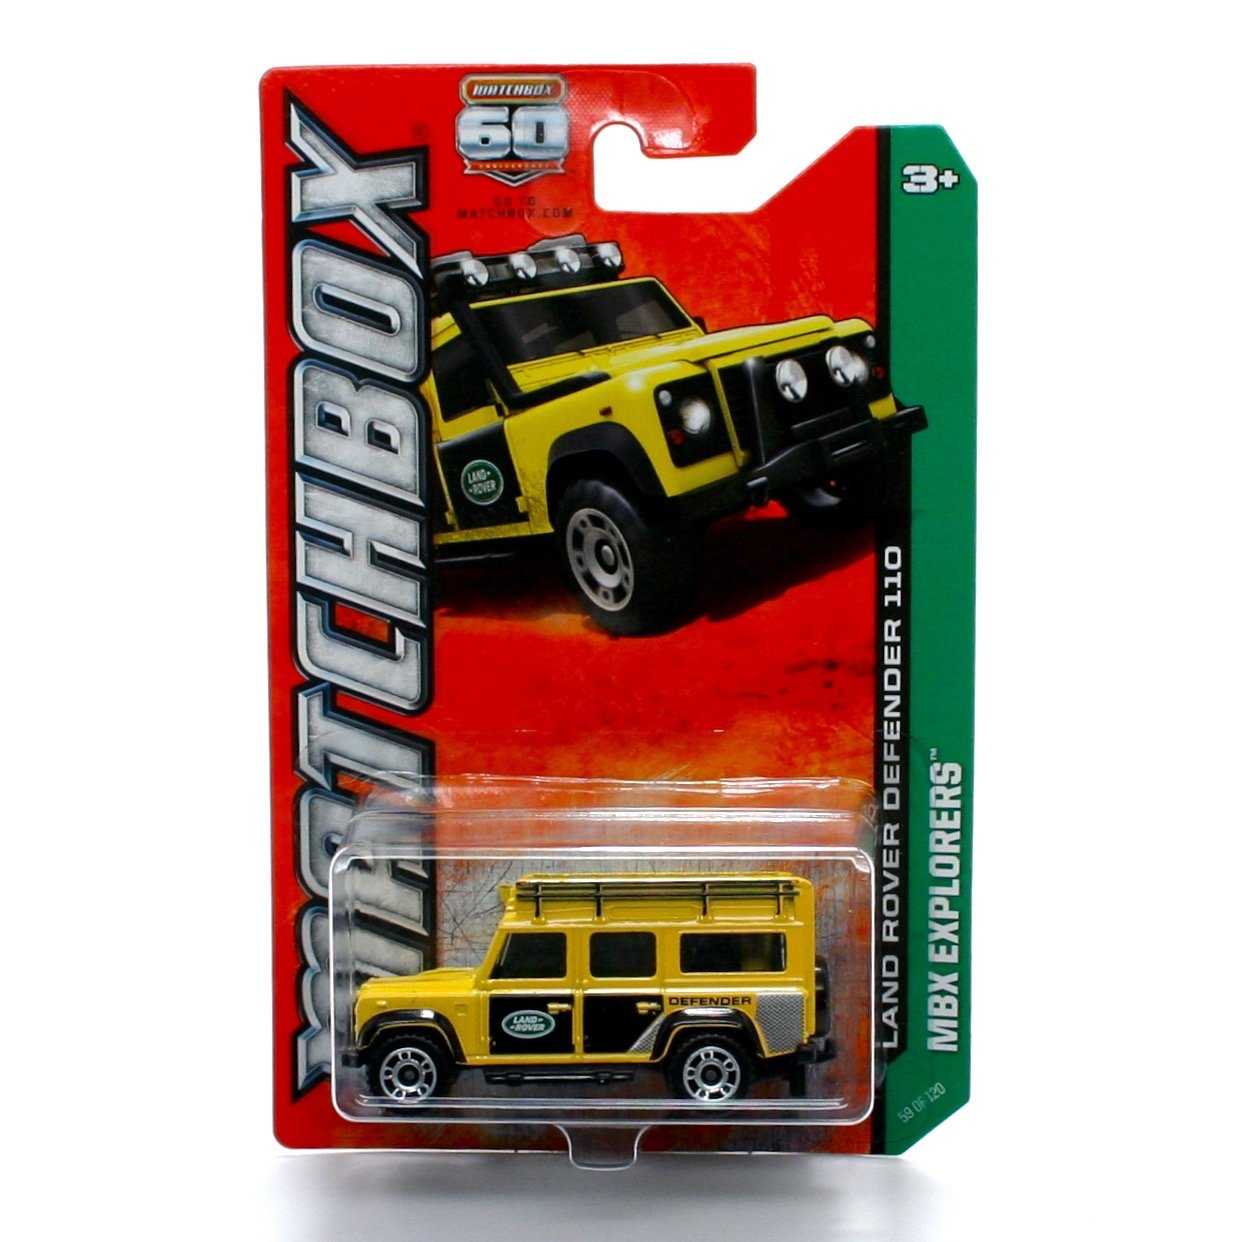 Matchbox Land Rover Defender 110 (Yellow) MBX Explorers 60th Anniversary 2013 Basic Die-Cast Vehicle (#59 of 120)